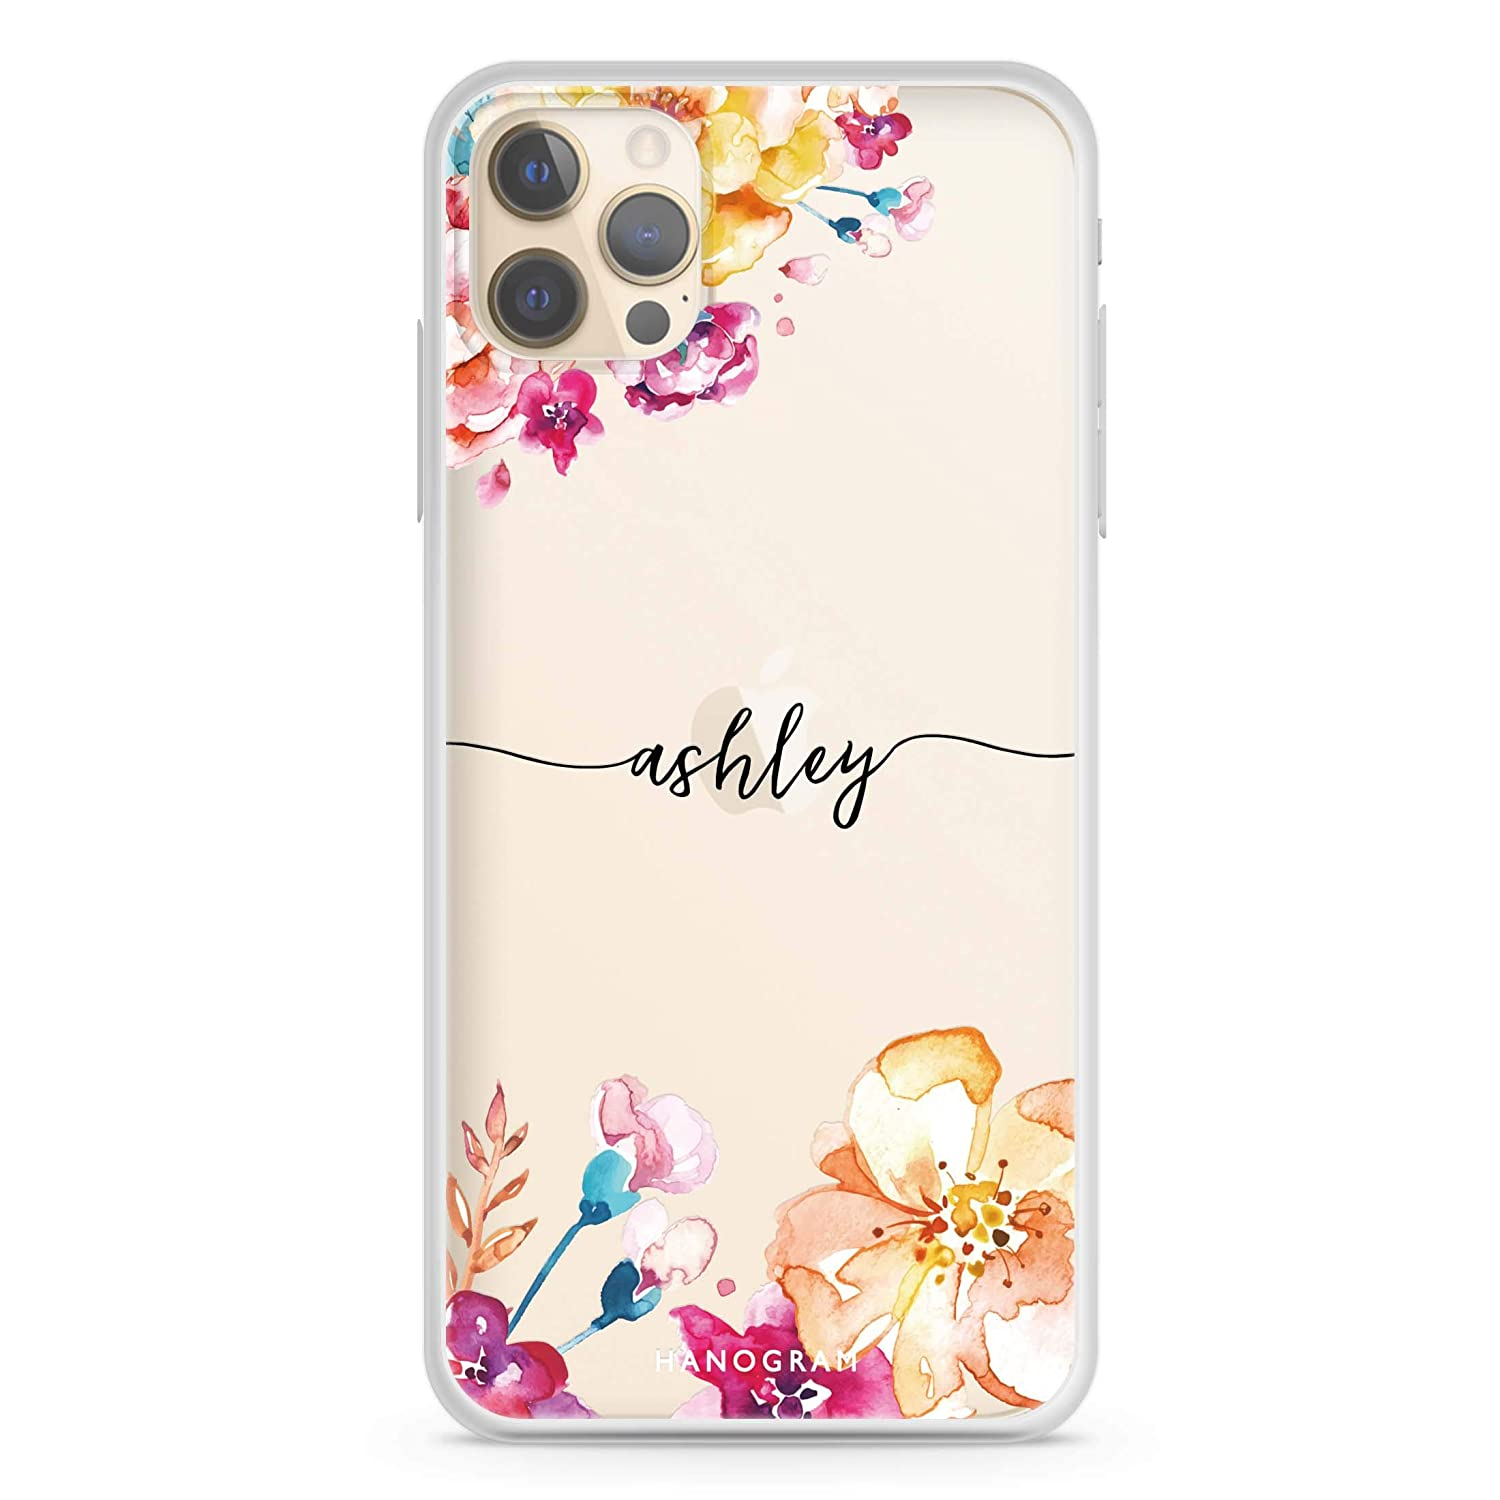 Art of 25% OFF Flowers safety iPhone 12 Pro Clear Soft iPh Case Max